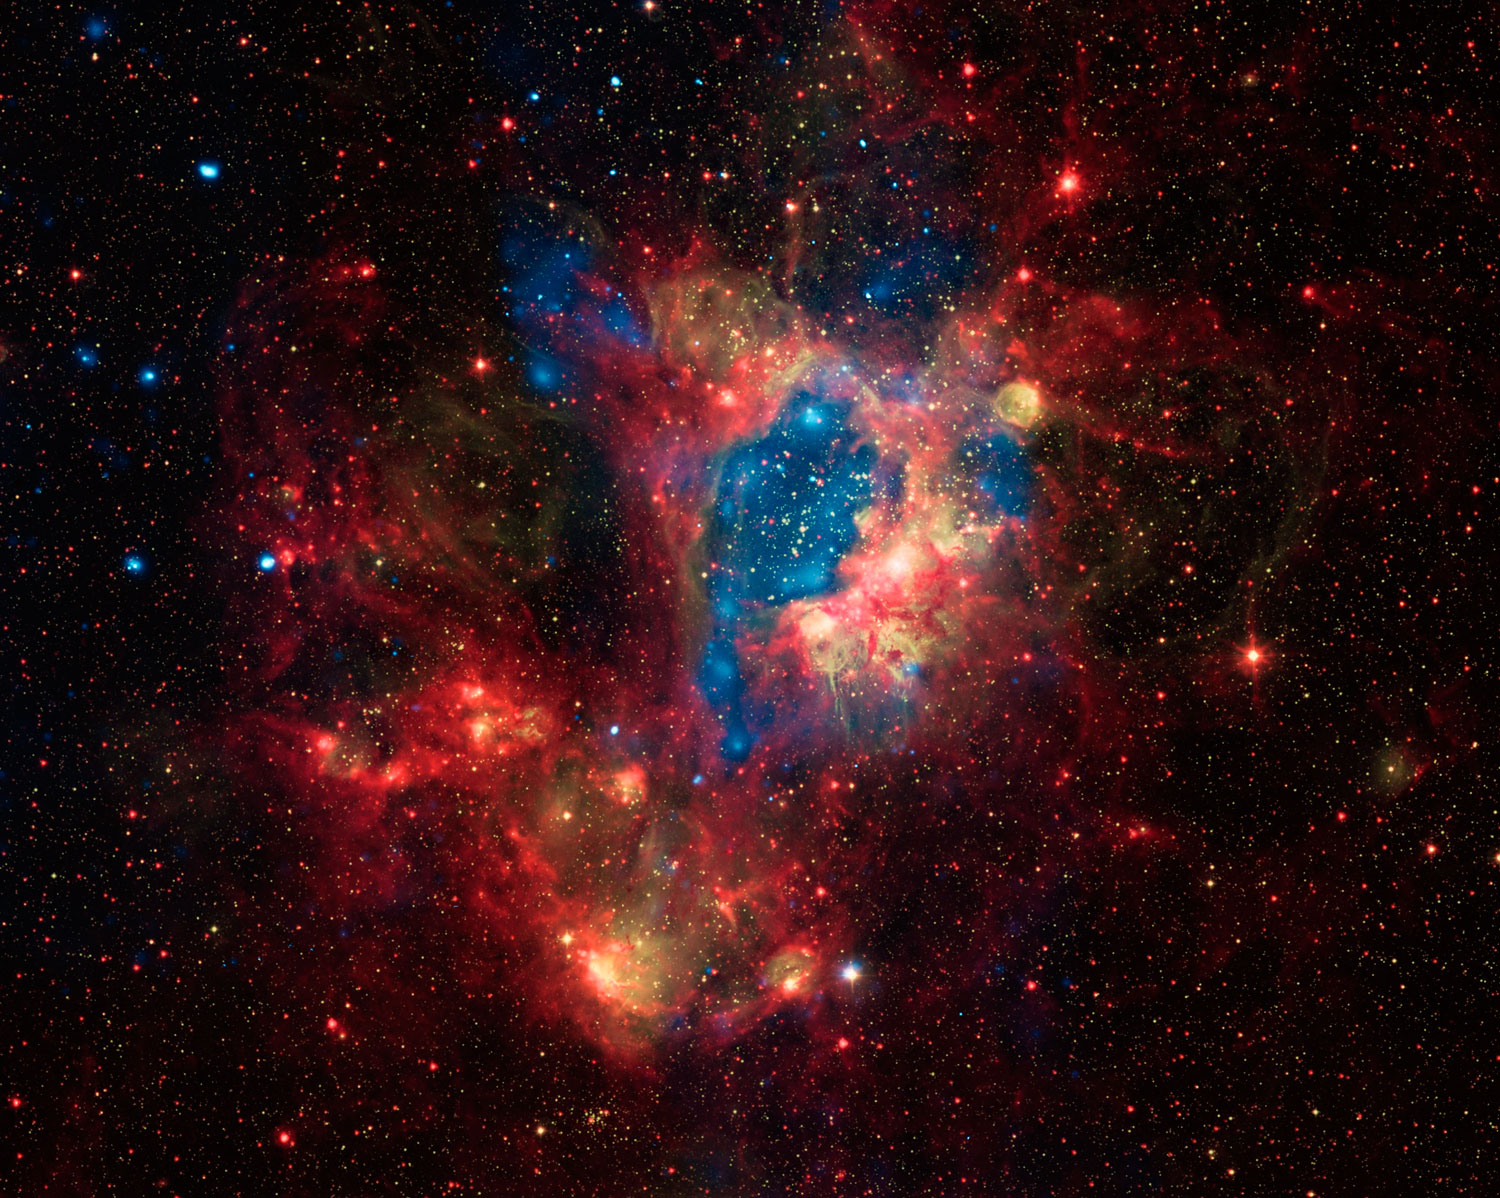 This composite image shows a portion of the Large Magellanic Cloud (LMC), a small satellite galaxy of the Milky Way located about 160,000 light years from Earth.